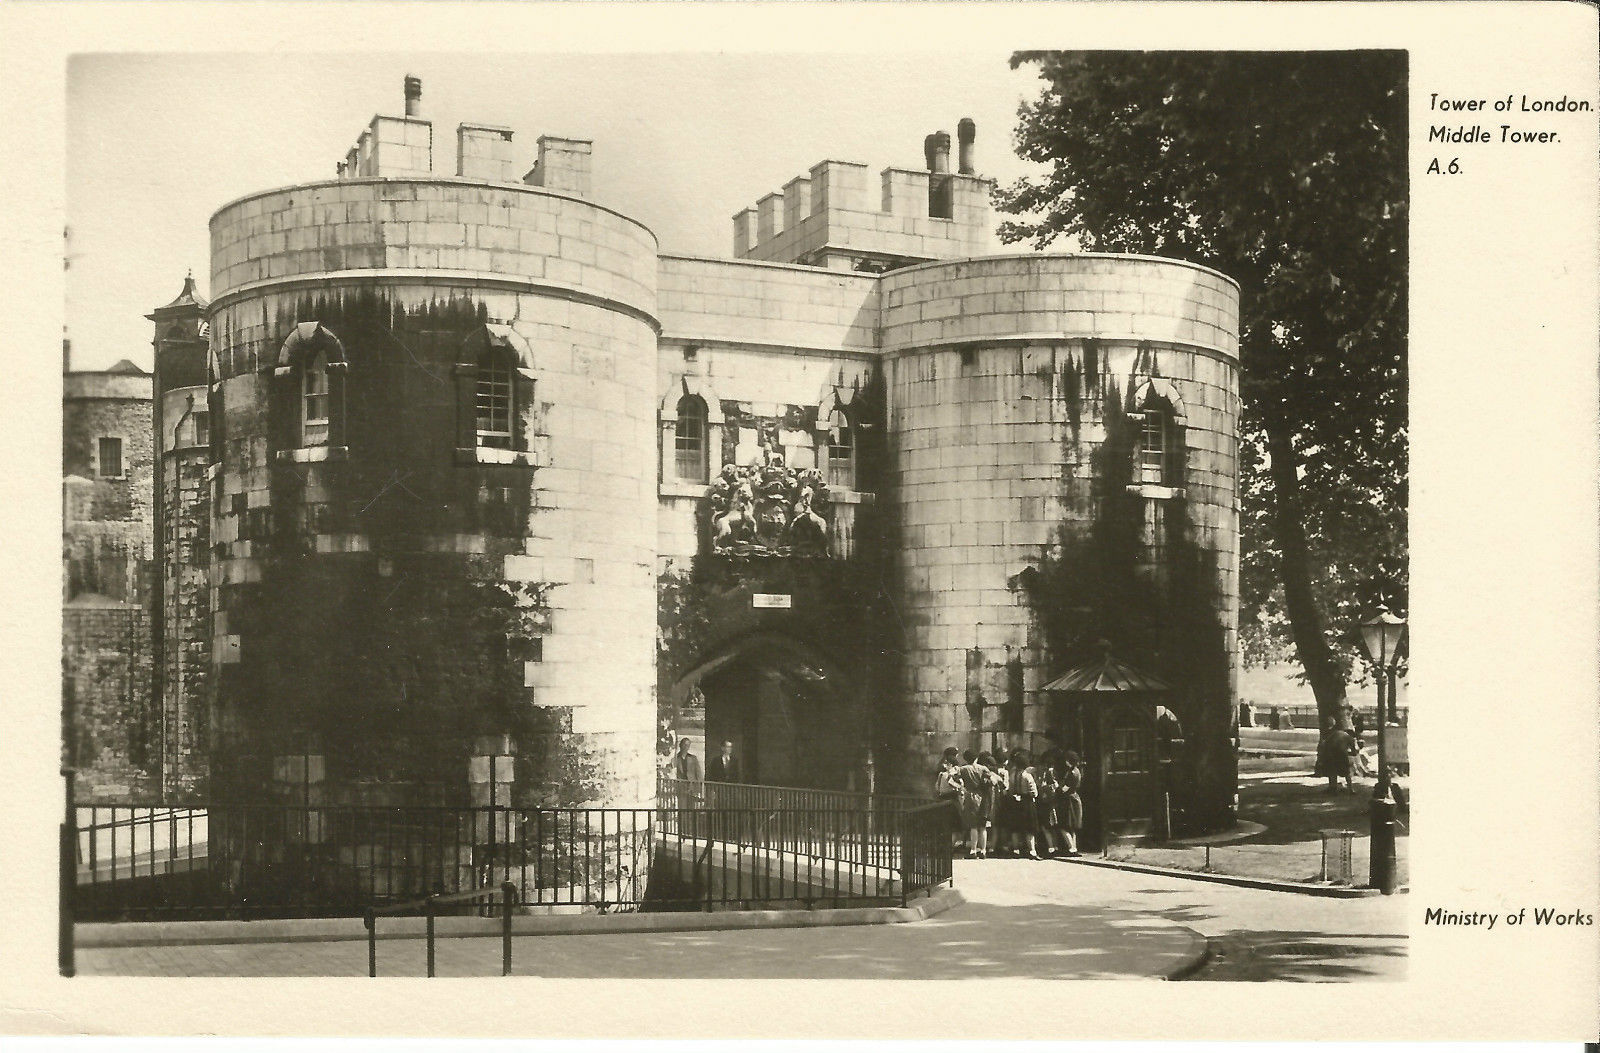 MiddleTower-MainEntrance-TowerOfLondon-GuardBox-c1940s-2.jpg